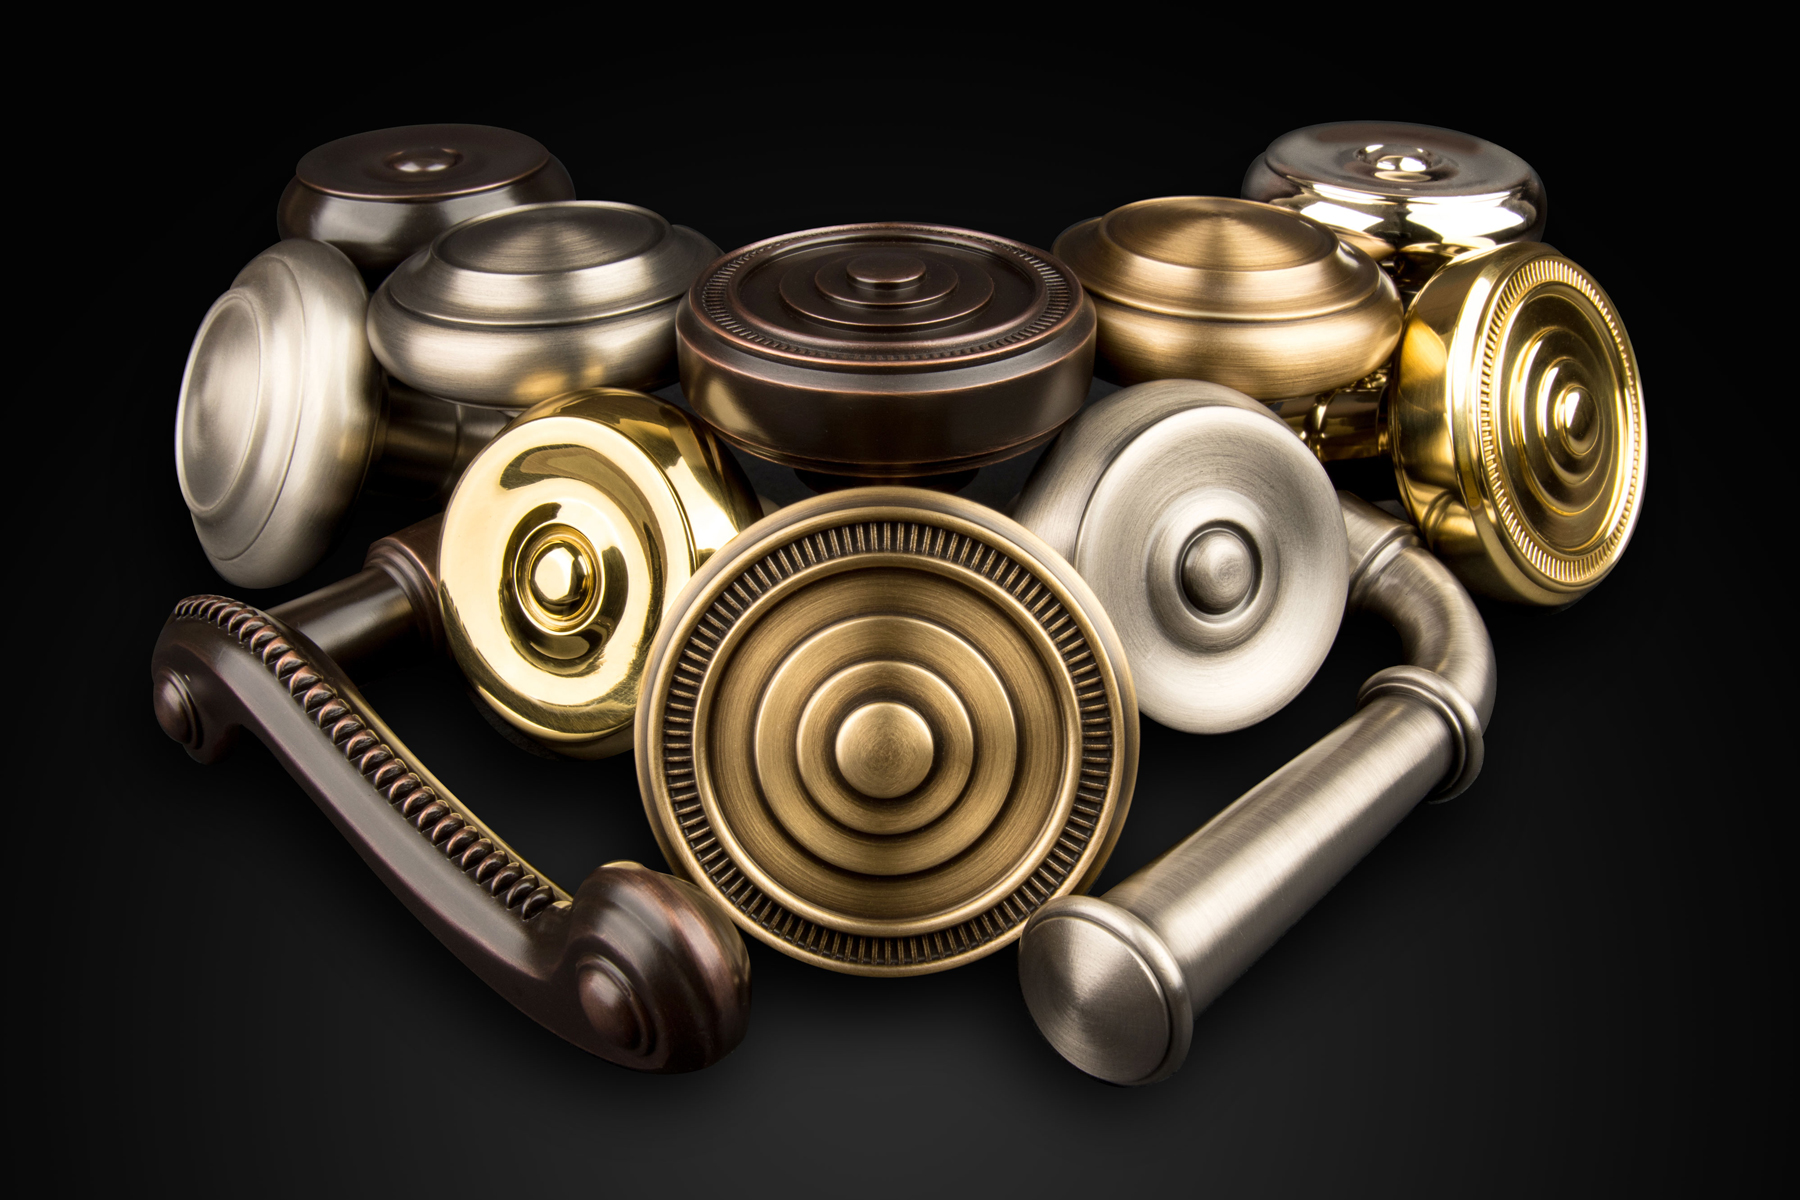 Vintage Metallregal Regal Brands – High-quality, Decorative Hardware Brands.